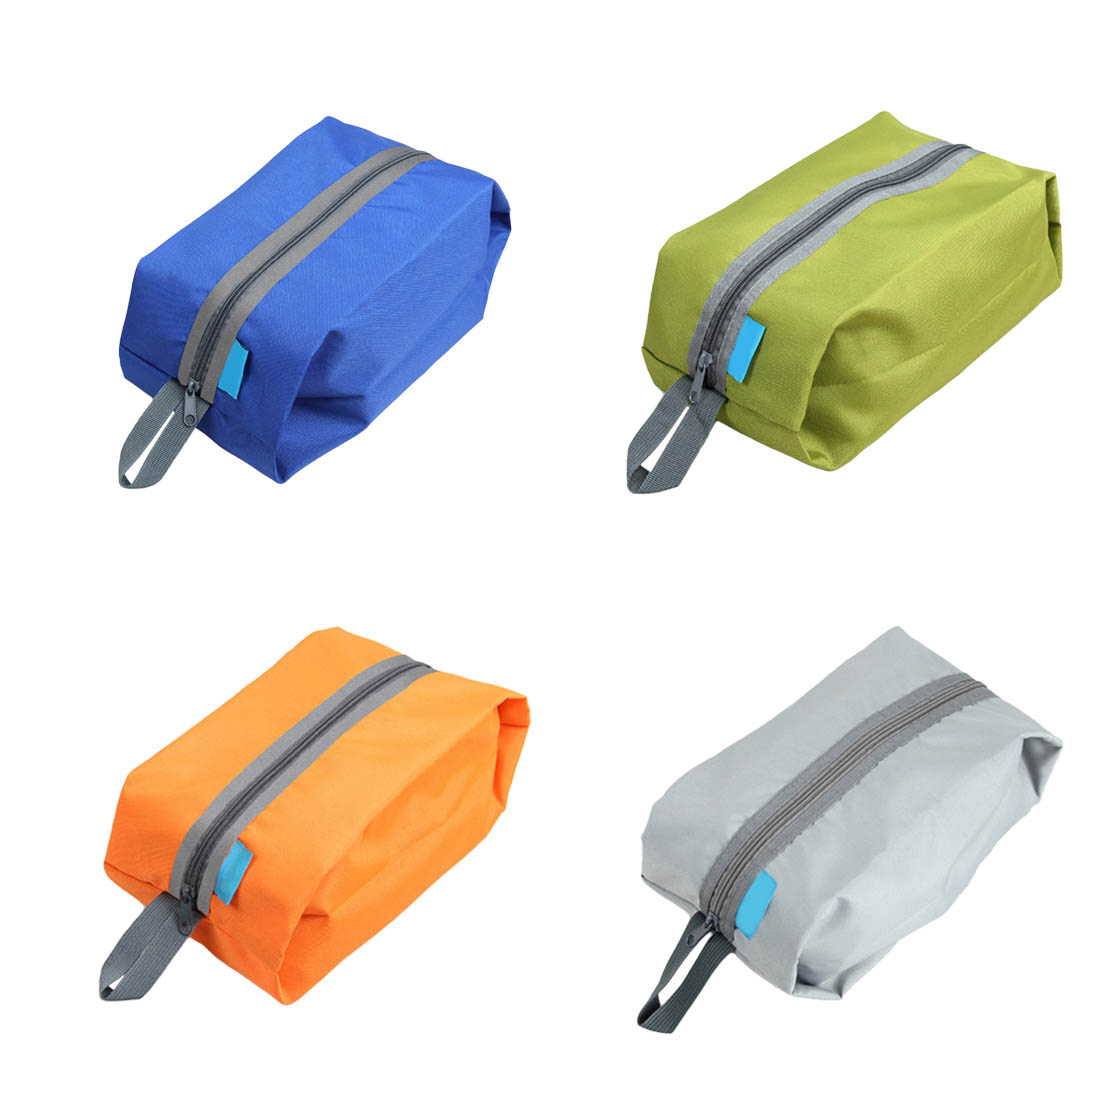 Tactical Durable Ultralight Waterproof Oxford Washing Gargle Stuff Bag Outdoor Camping Hiking Travel Storage Bag Kit